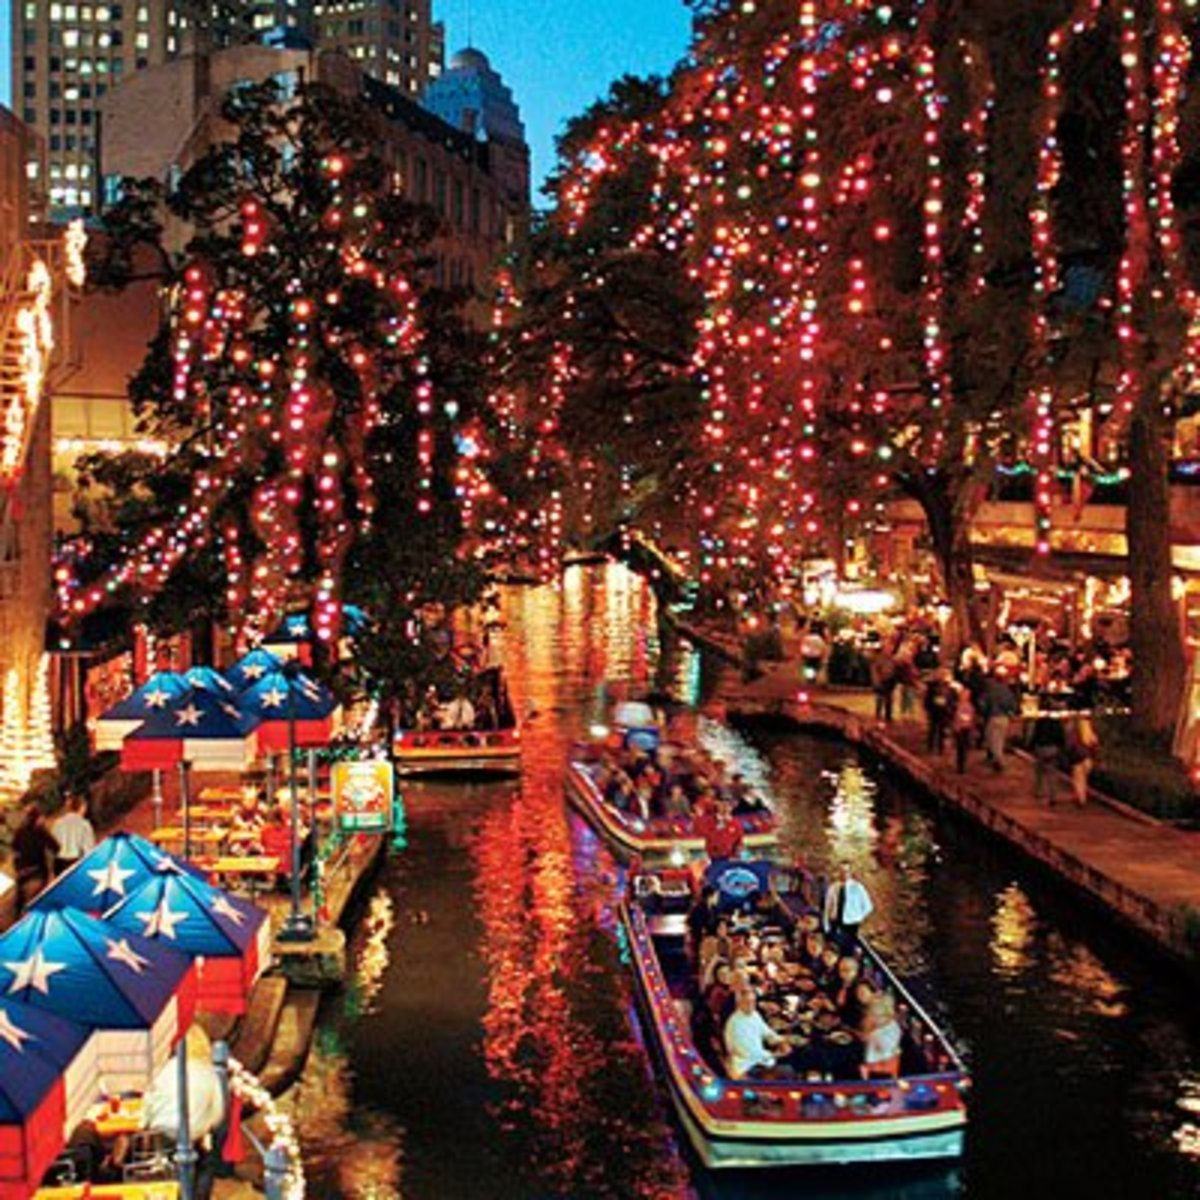 san-antonio-texas-the-most-beautiful-city-in-the-united-states-of-america